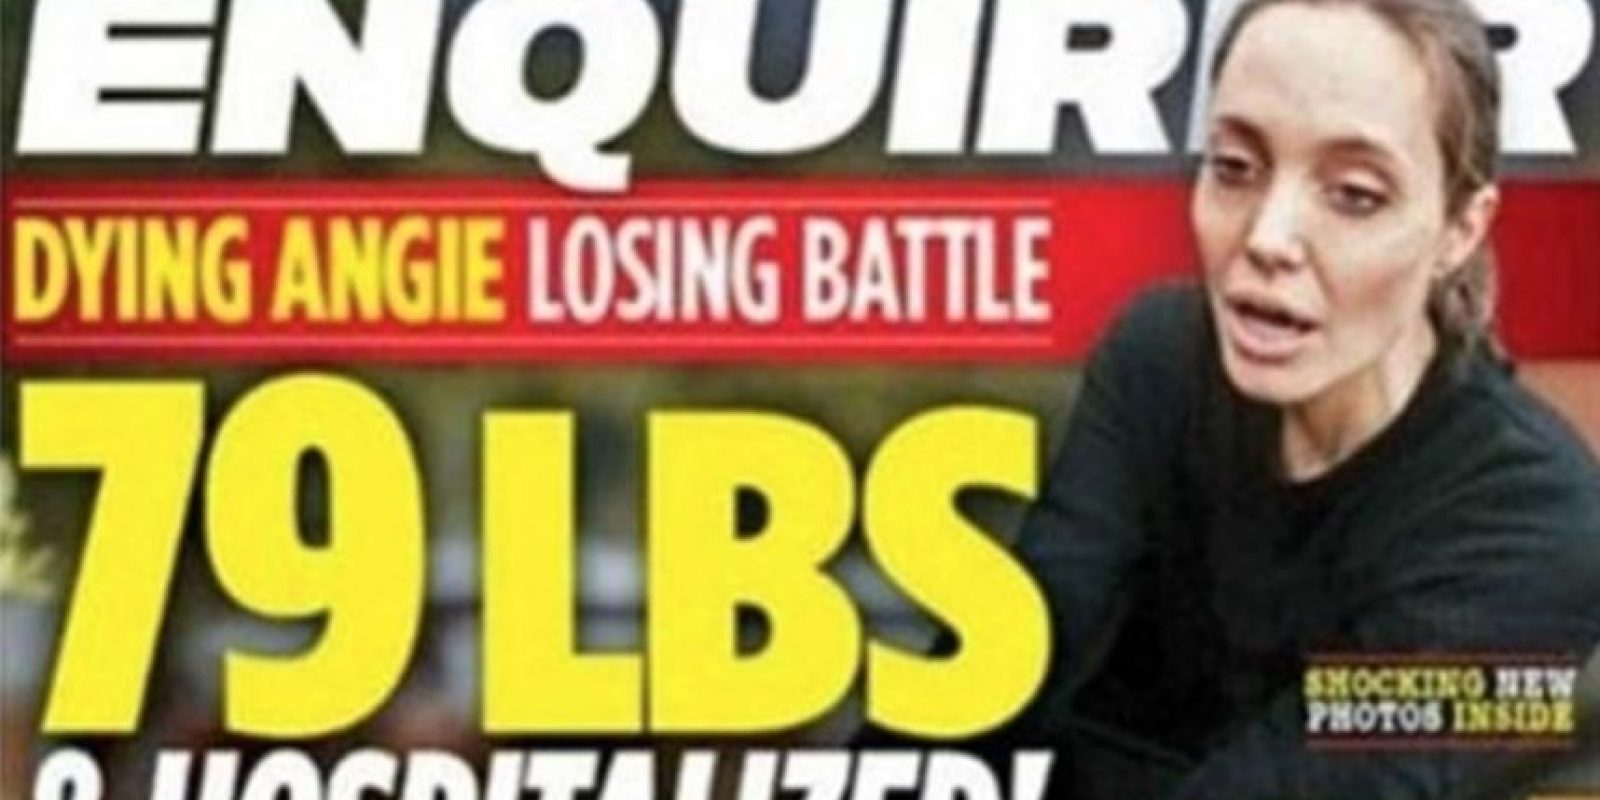 Esta fue la portada del tabloide Foto: The National Enquirer